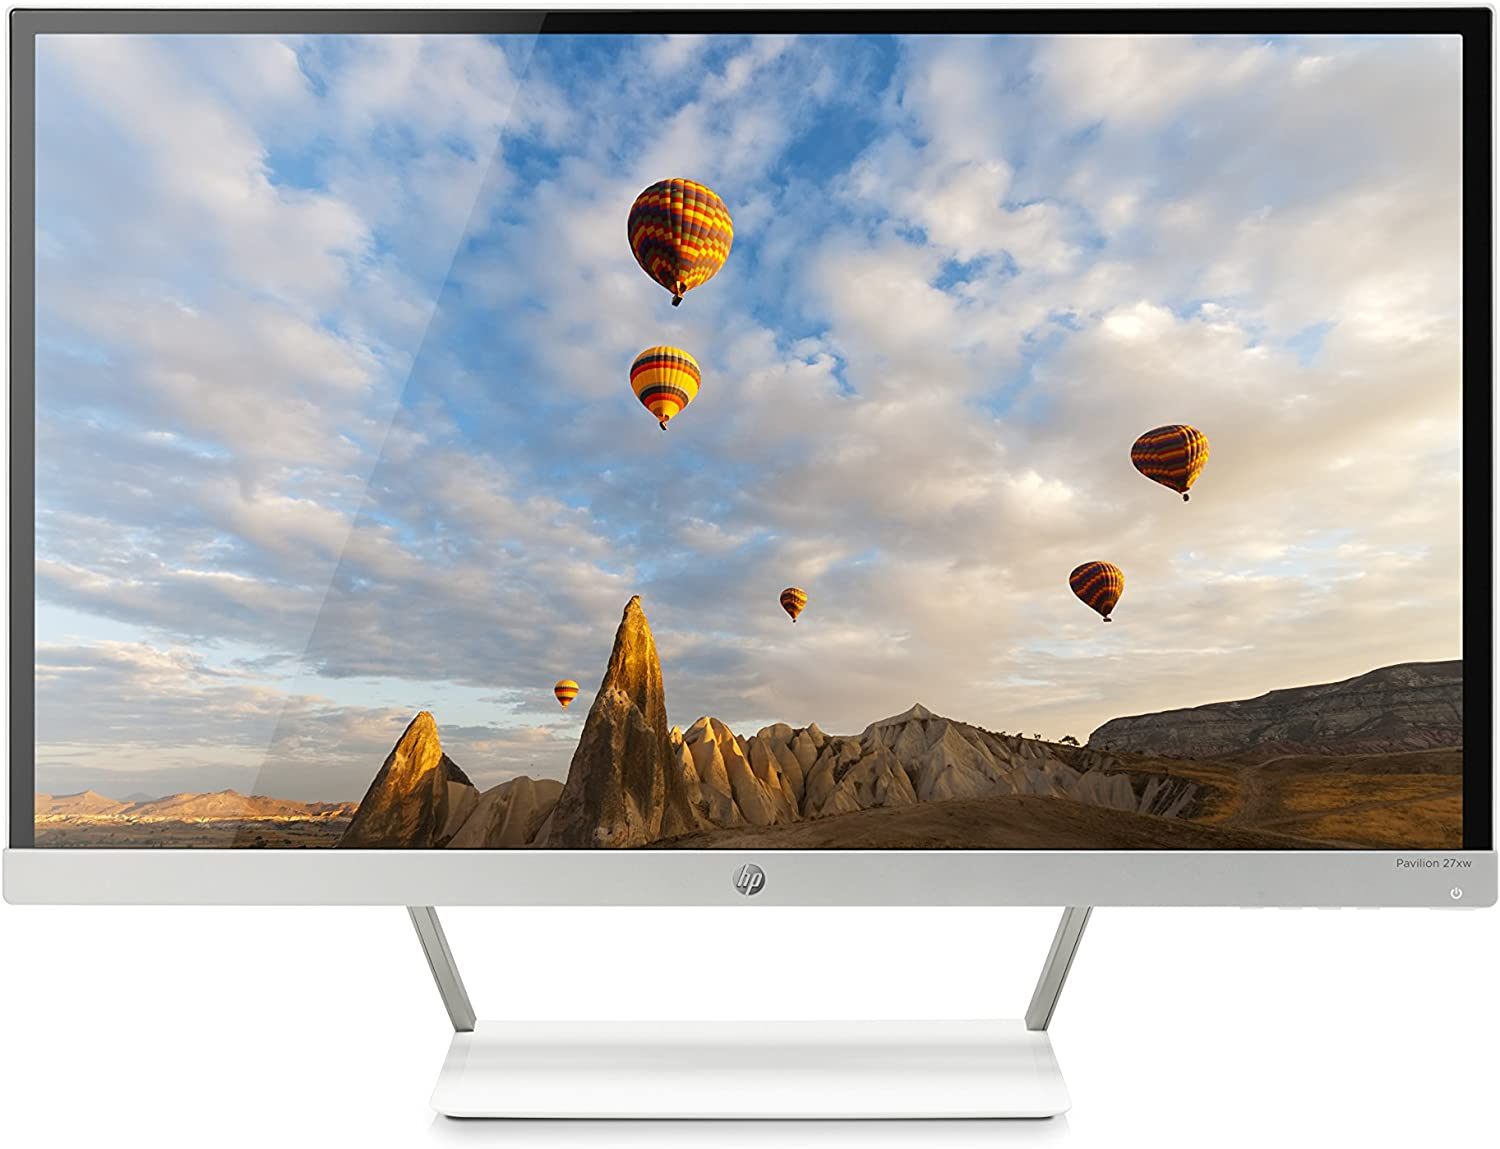 Review of HP Pavilion 27xw 27-Inch Full HD 1080p IPS LED Monitor (V0N26AA#ABA)